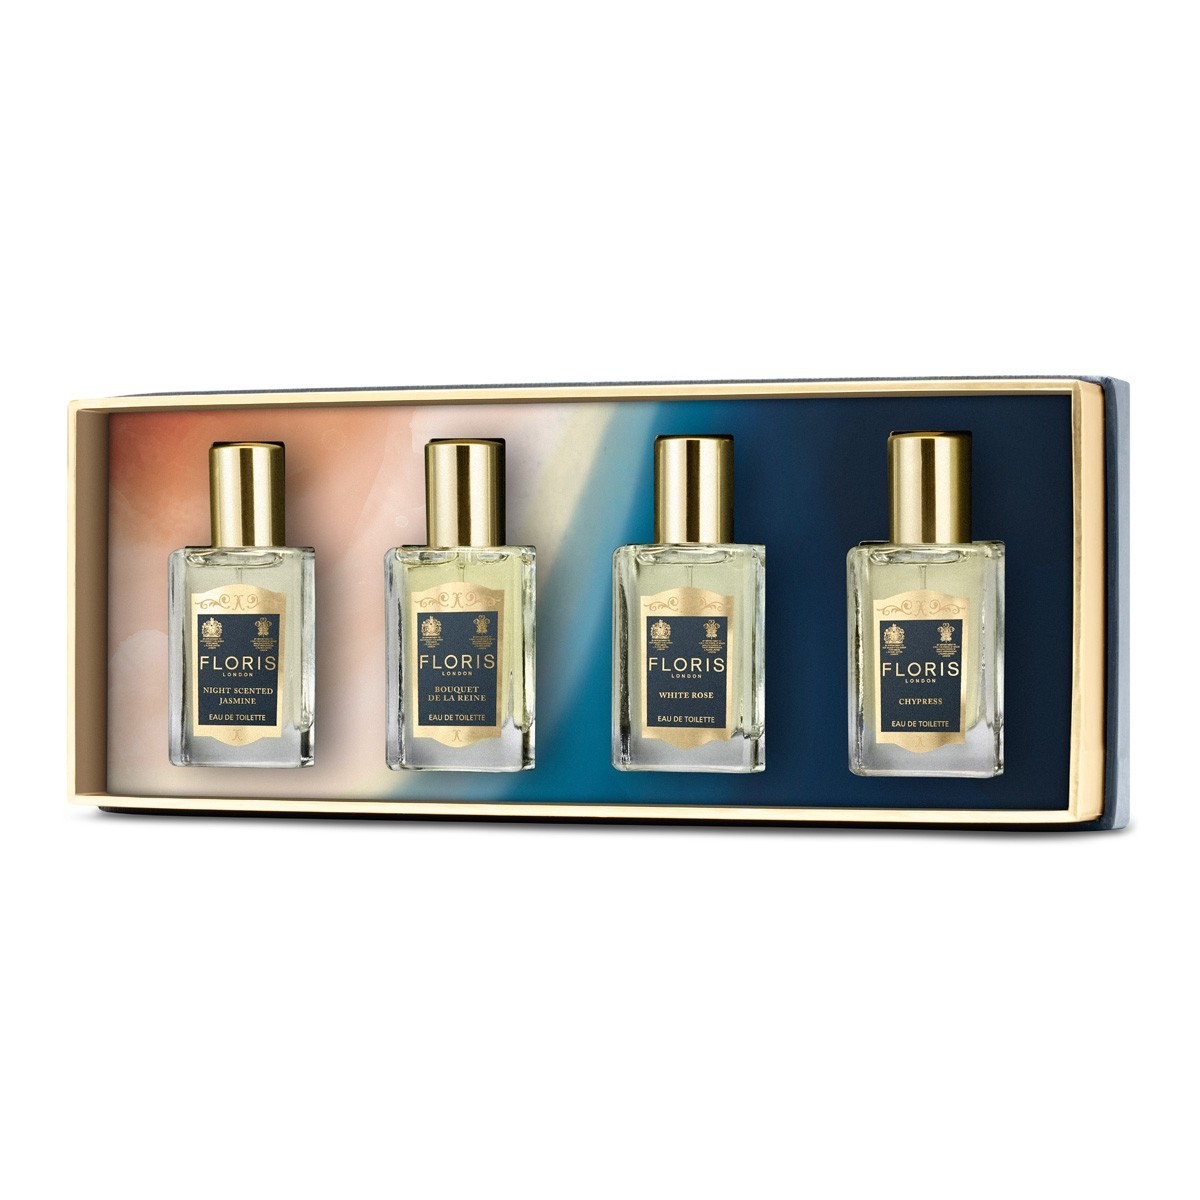 FLORIS LONDON Fragrance Travel Collection for Her EDT 4 x 14 ml